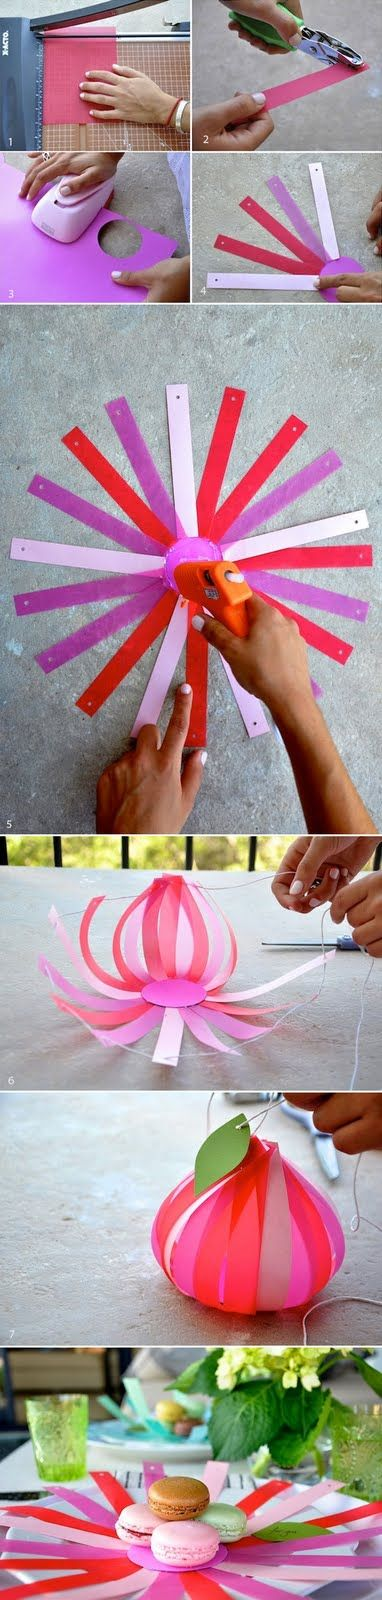 DIY Inspiration: Blumenkorb // DIY Flower Basket